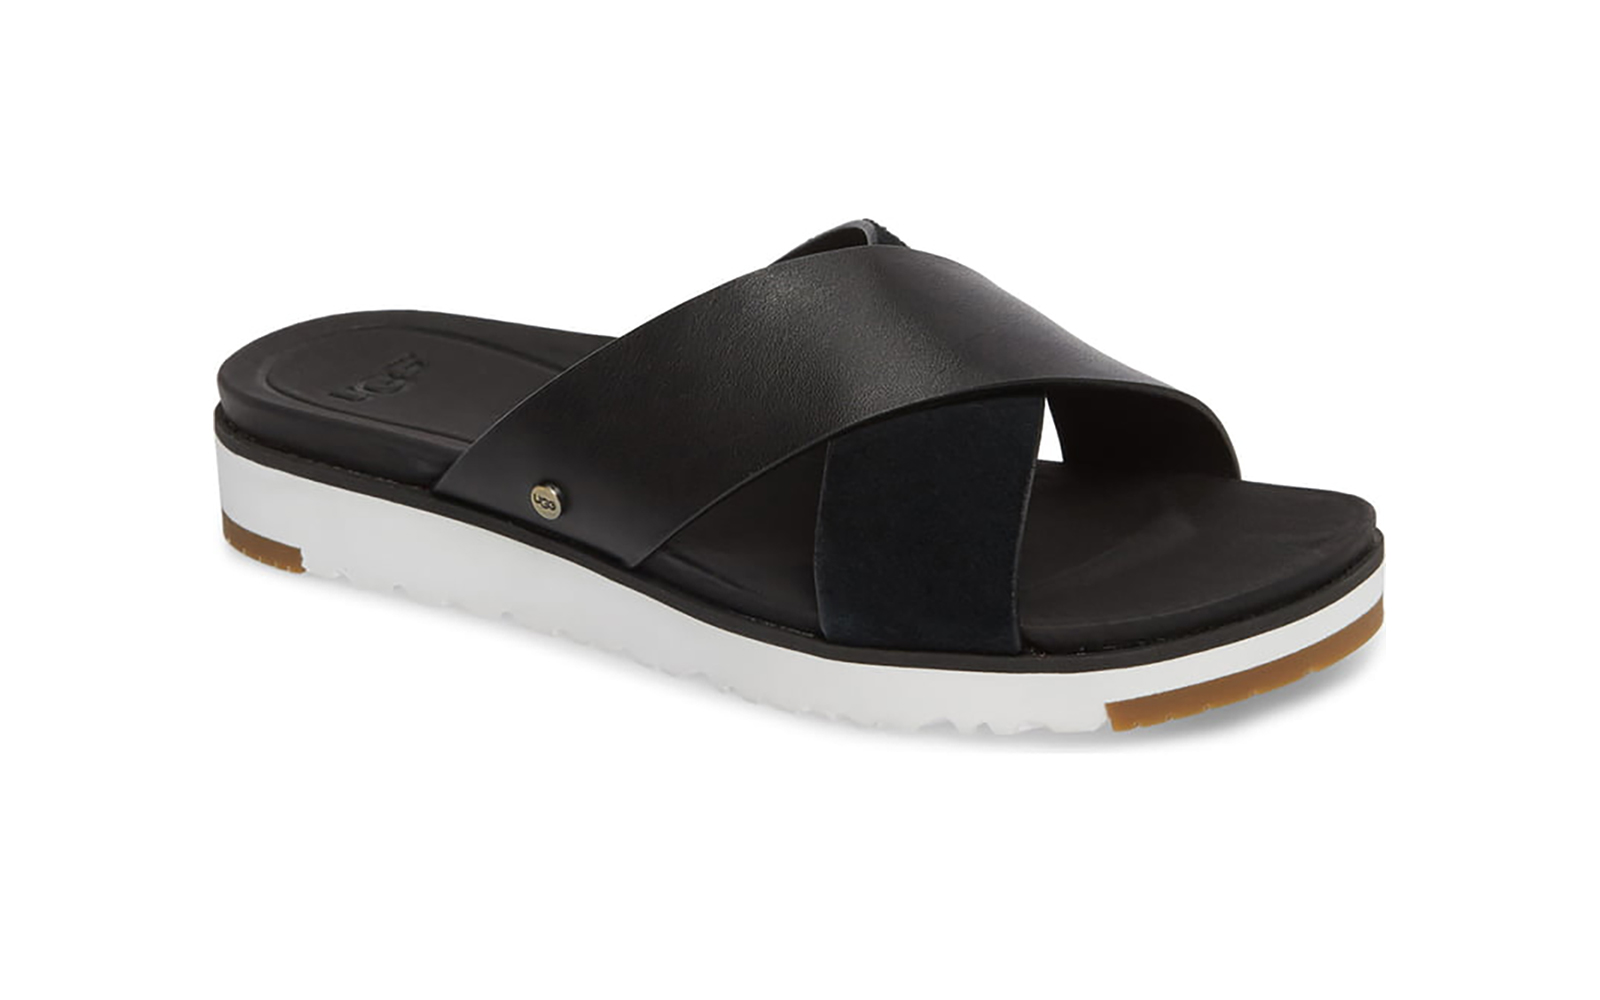 67ec86e393f37 14 Most Comfortable Sandals for 2019, According to Reviews | Travel ...